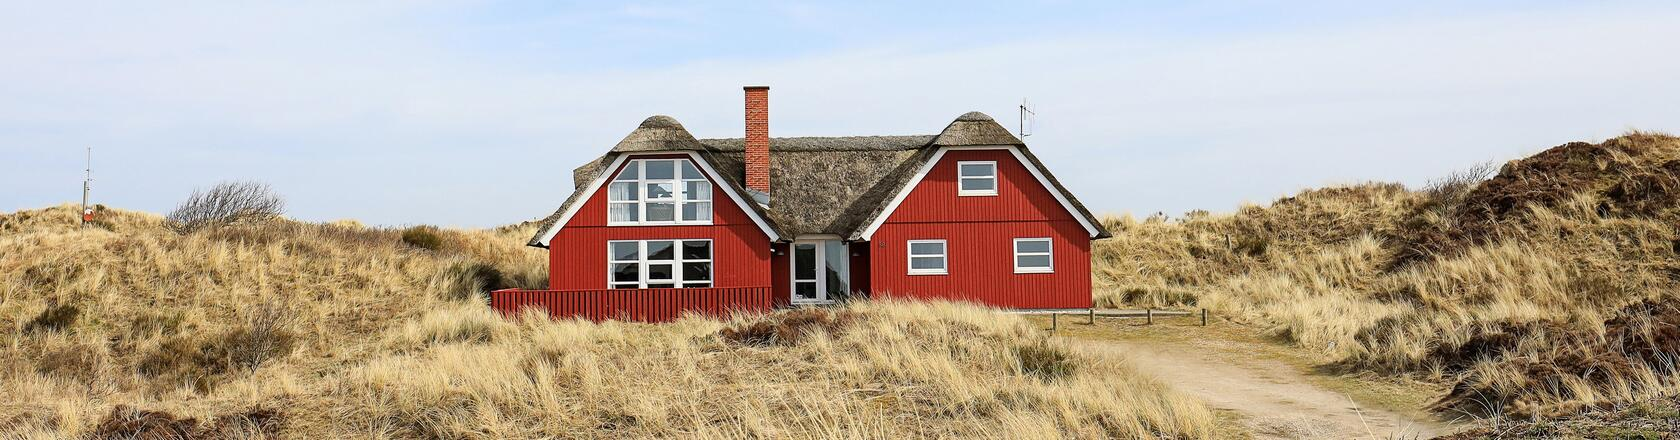 Vejers/Mosevrå in Denmark — Rent a holiday home with DanCenter